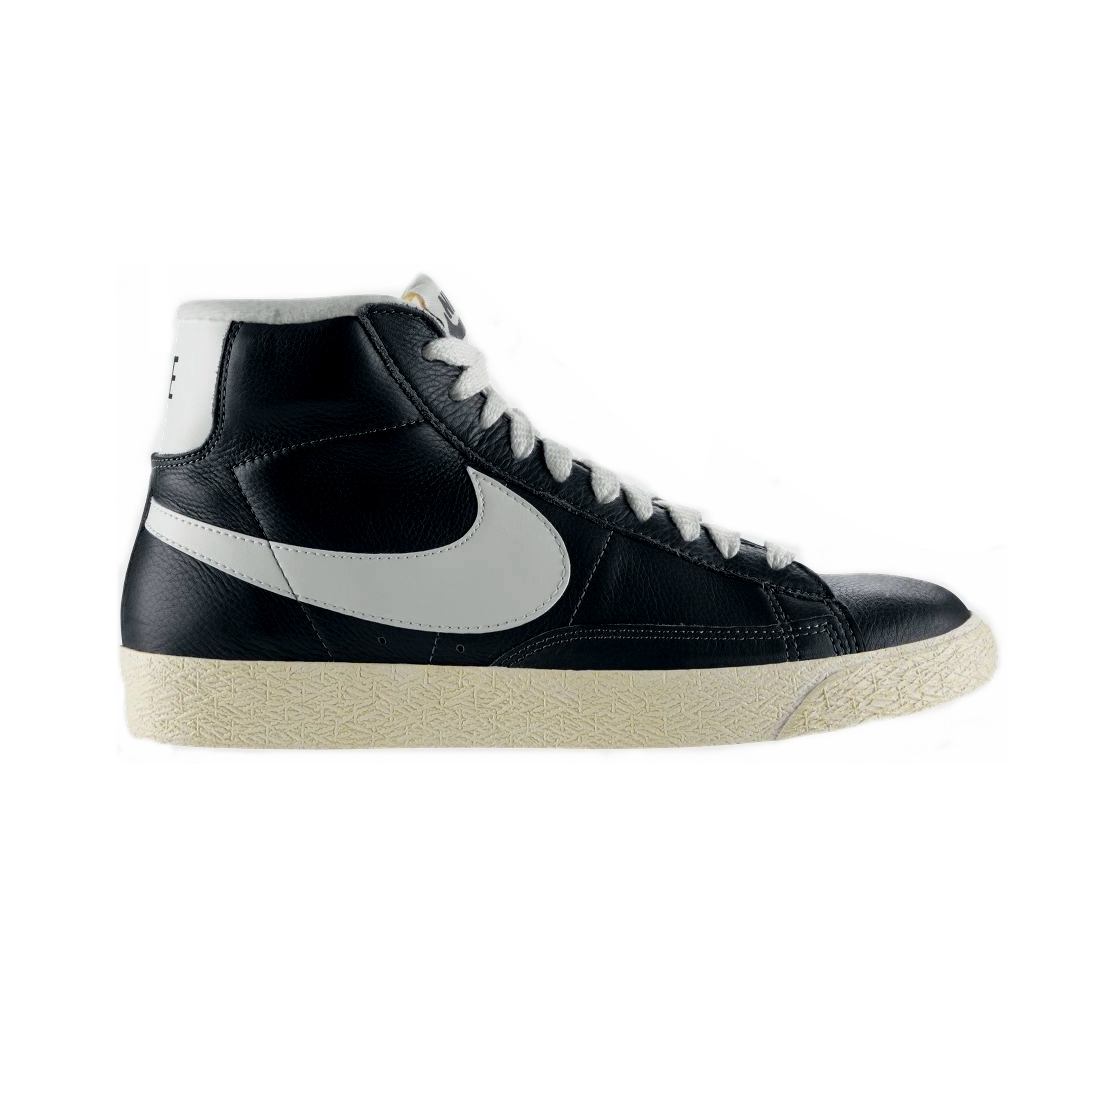 nike blazer mid leder sneaker sportschuhe turnschuhe. Black Bedroom Furniture Sets. Home Design Ideas